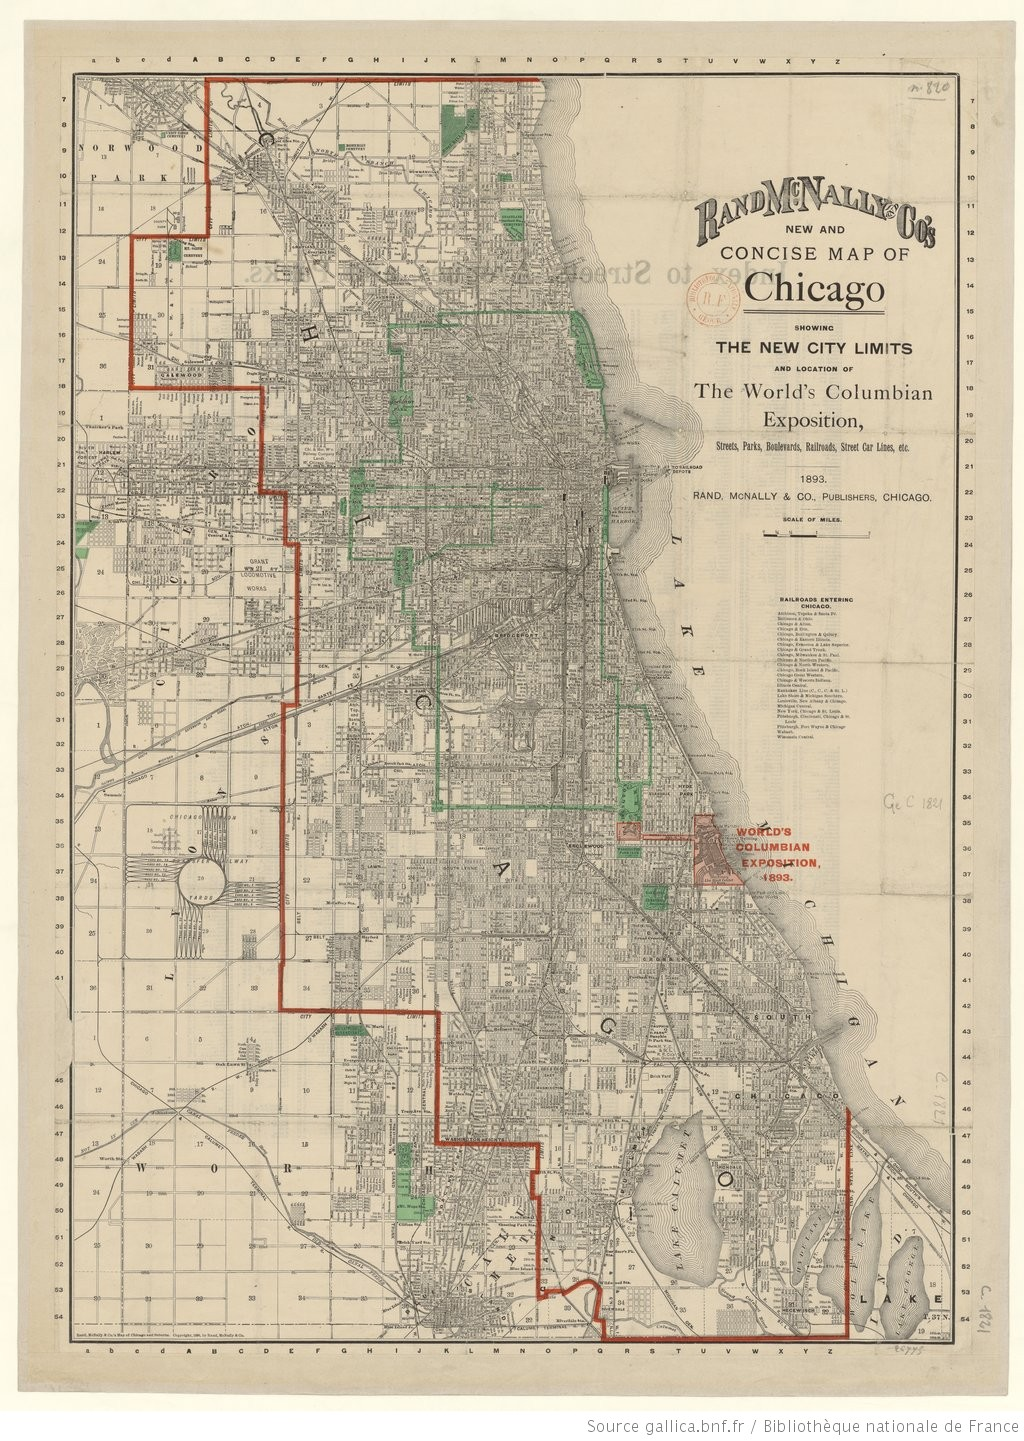 Rand, Mc Nally and Co's new and concise Map of Chicago, showing the on